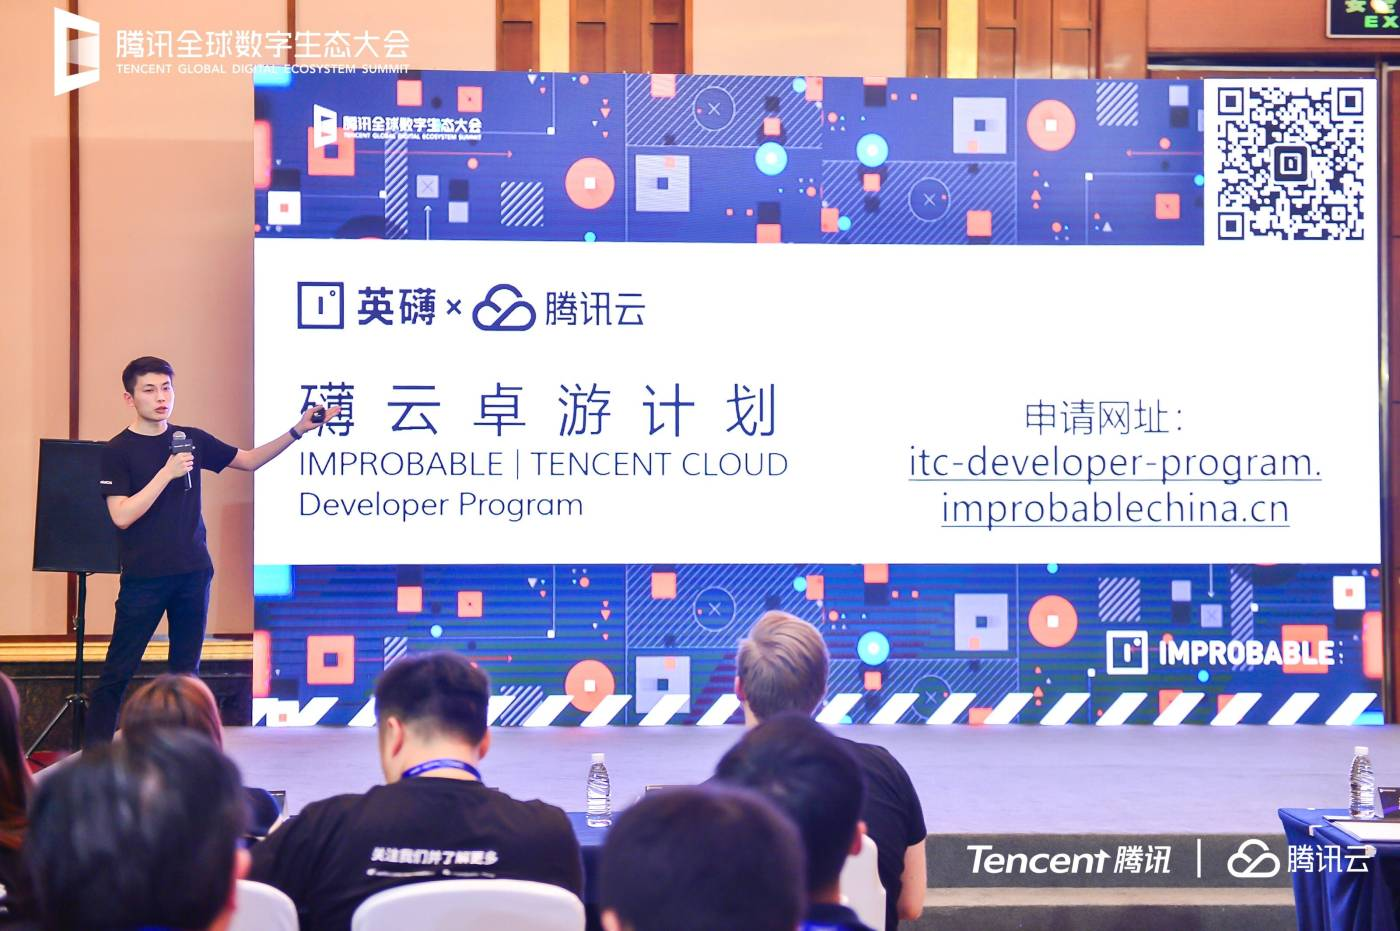 Improbable x tencent-cloud at The Tencent Global Digital Ecosystem Summit